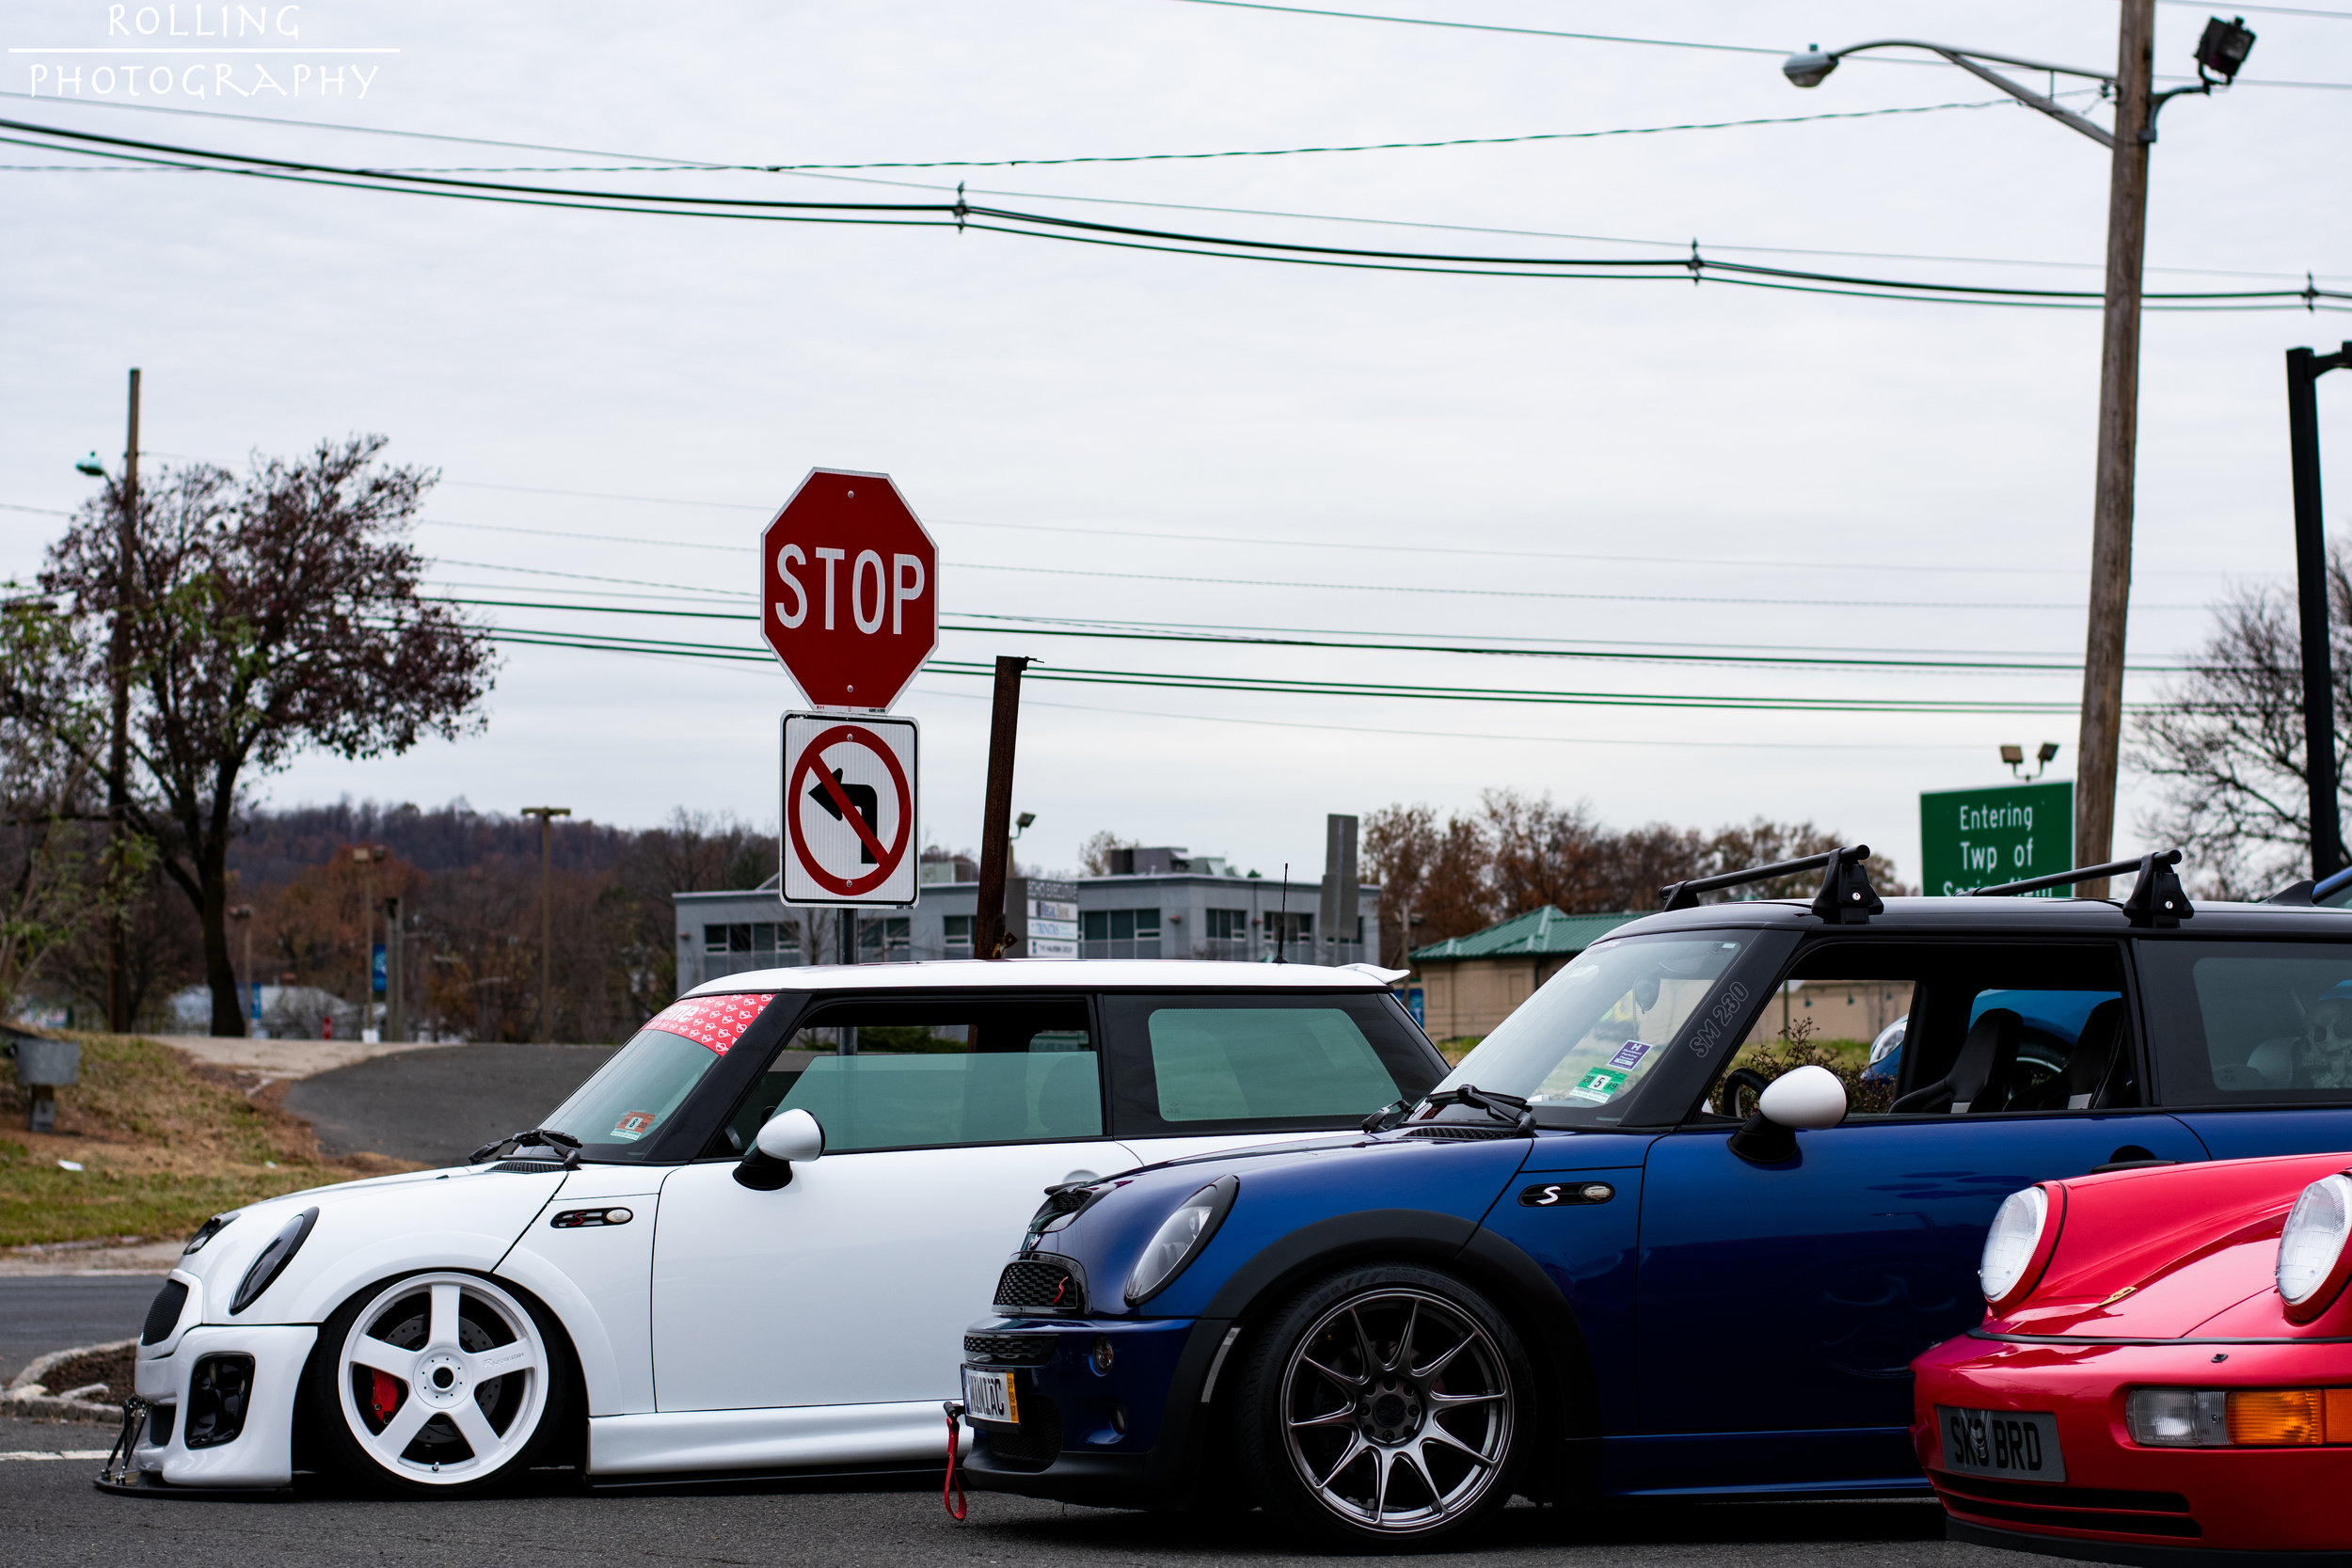 Group Shot of  @sikmini ,  @blue_coop_r53  and Porsche 911 Carrera 4 (964)  ISO 200, 50mm, f / 4.0 Shutter Speed 1/500